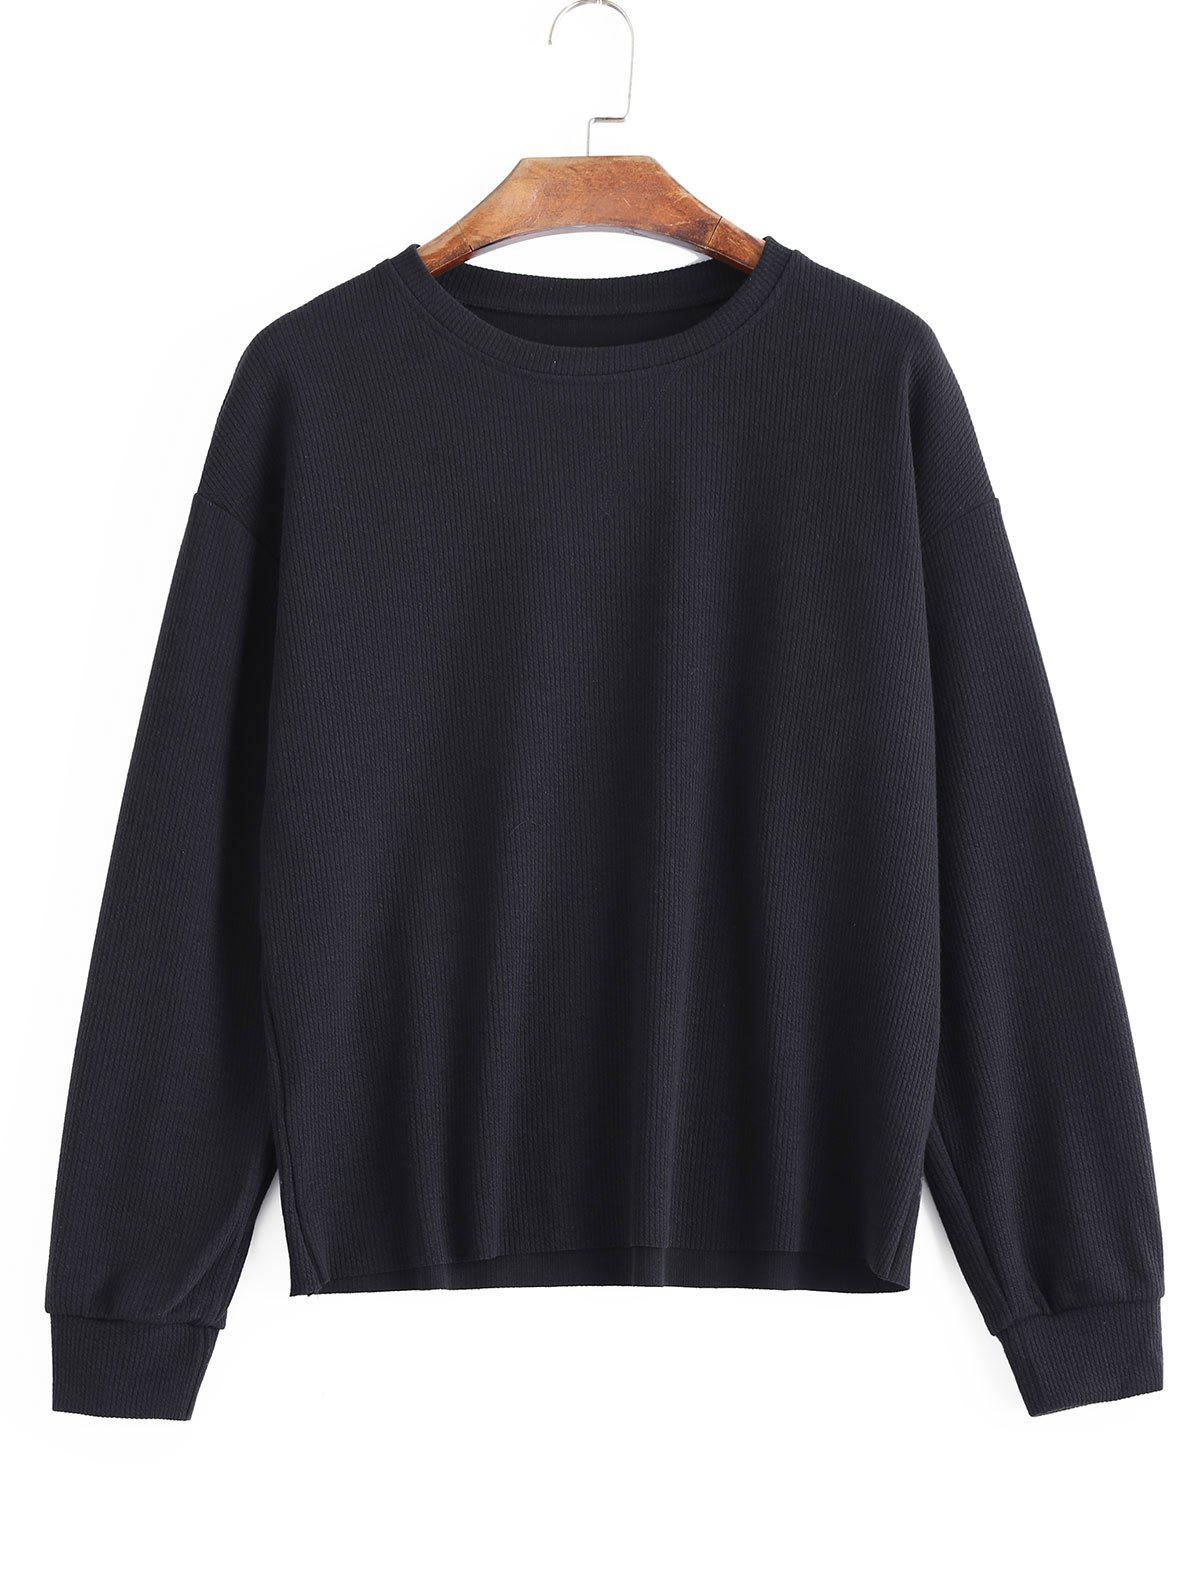 Loose Knitted Ribbed Sweatshirt 230401203